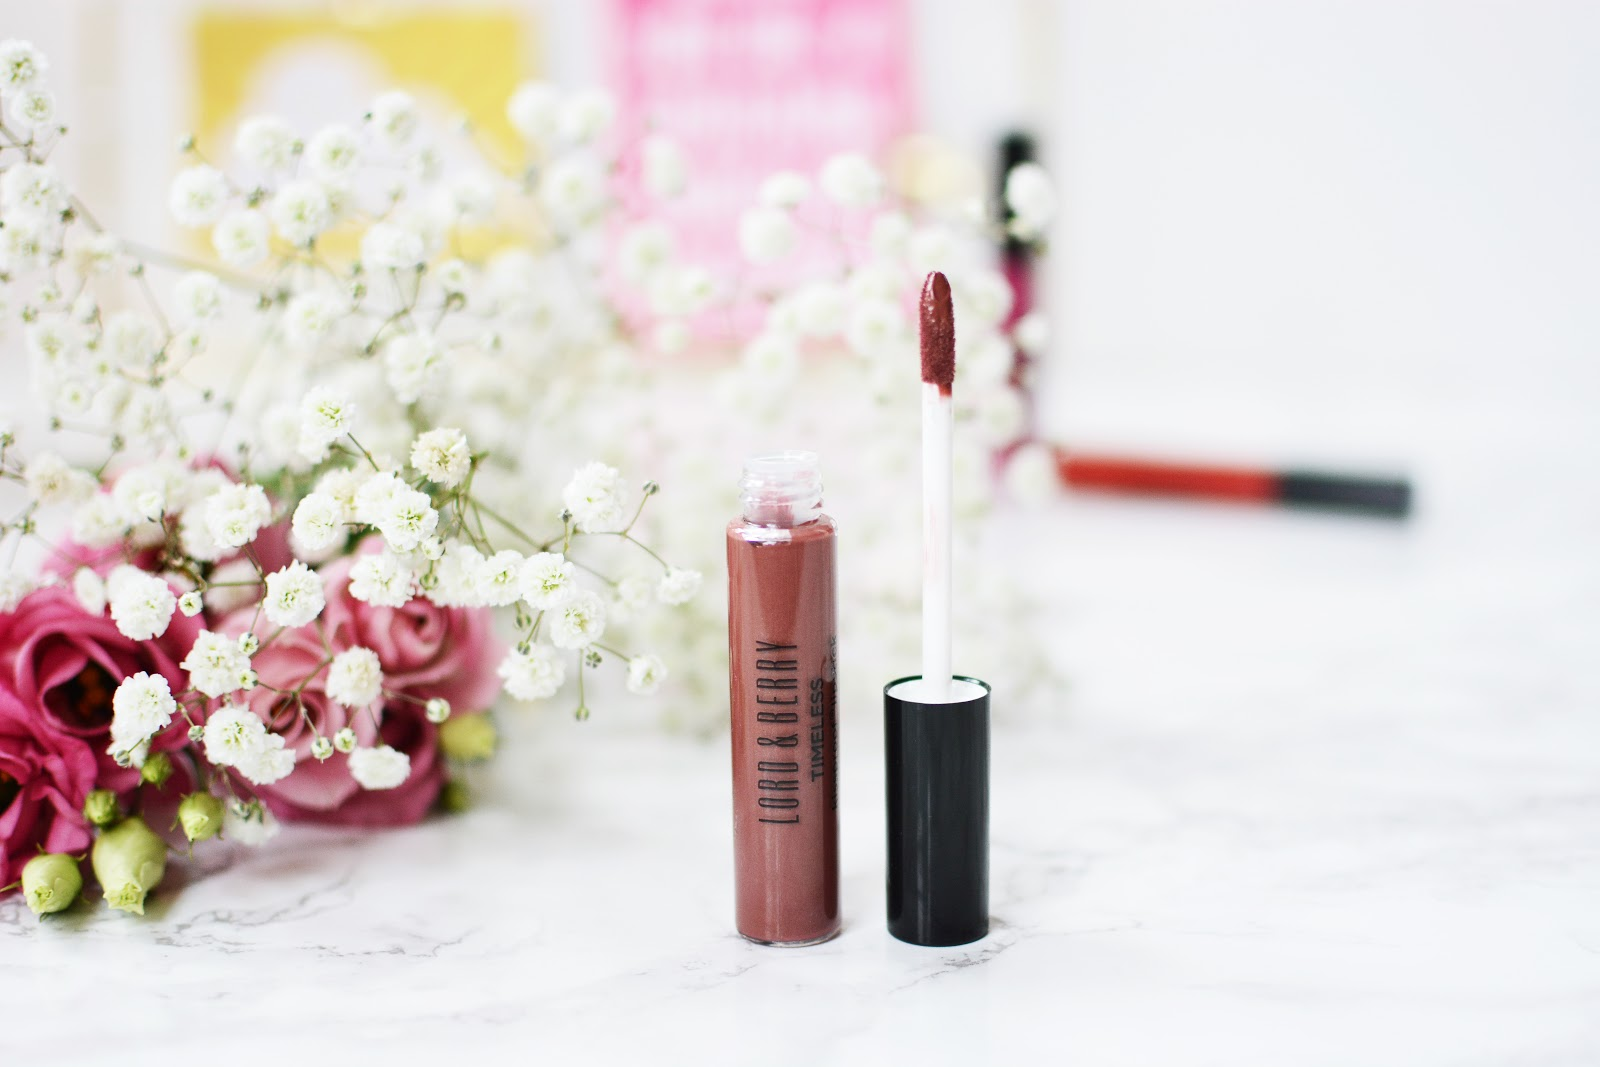 Lord & Berry Timeless Kissproof Lipstick FIRST LADY